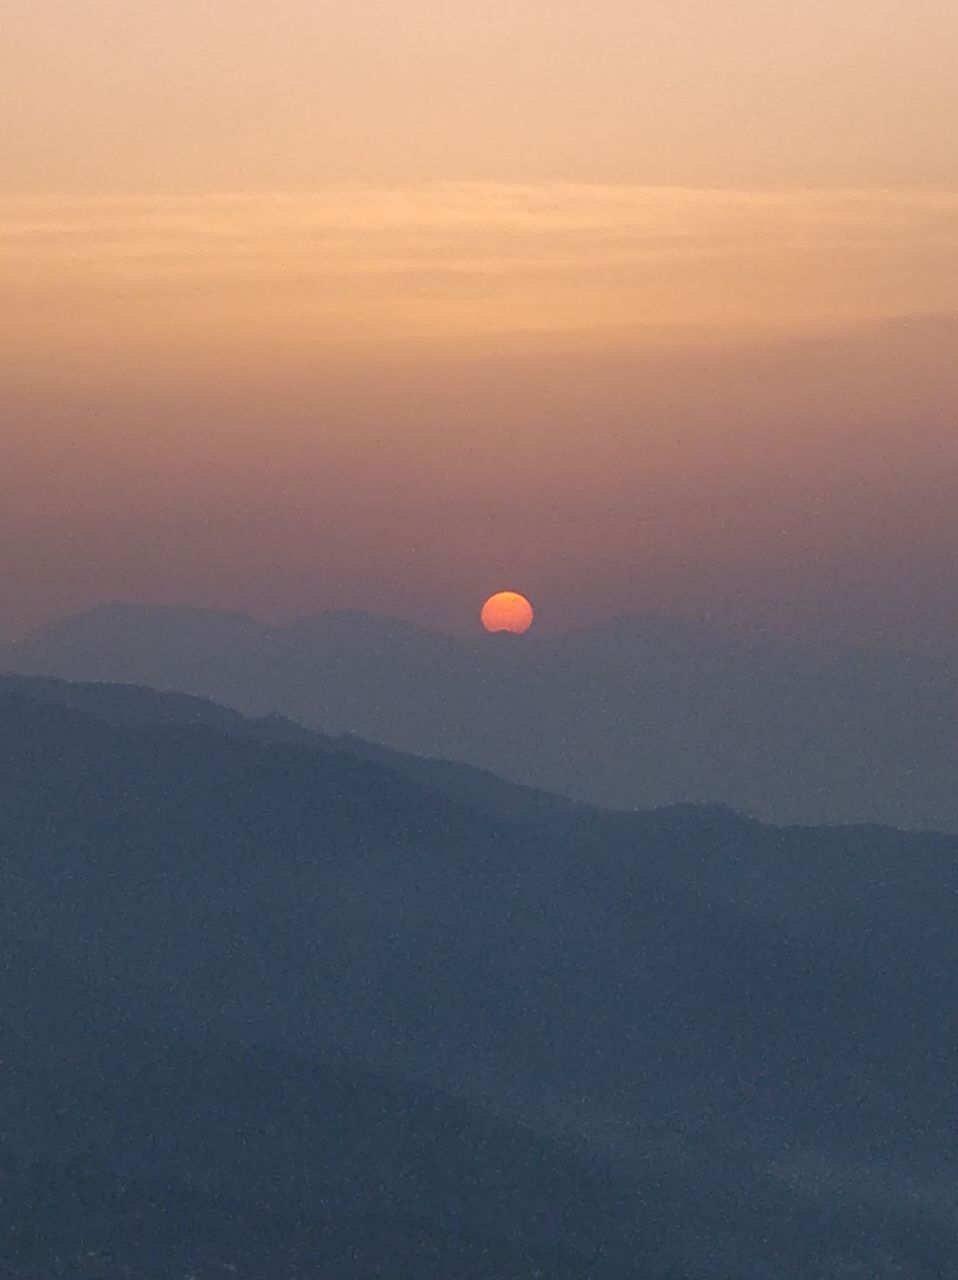 We witnessed the most stunning sunset at Chauli ki Jali behind the Mukteshwar Temple cliff.